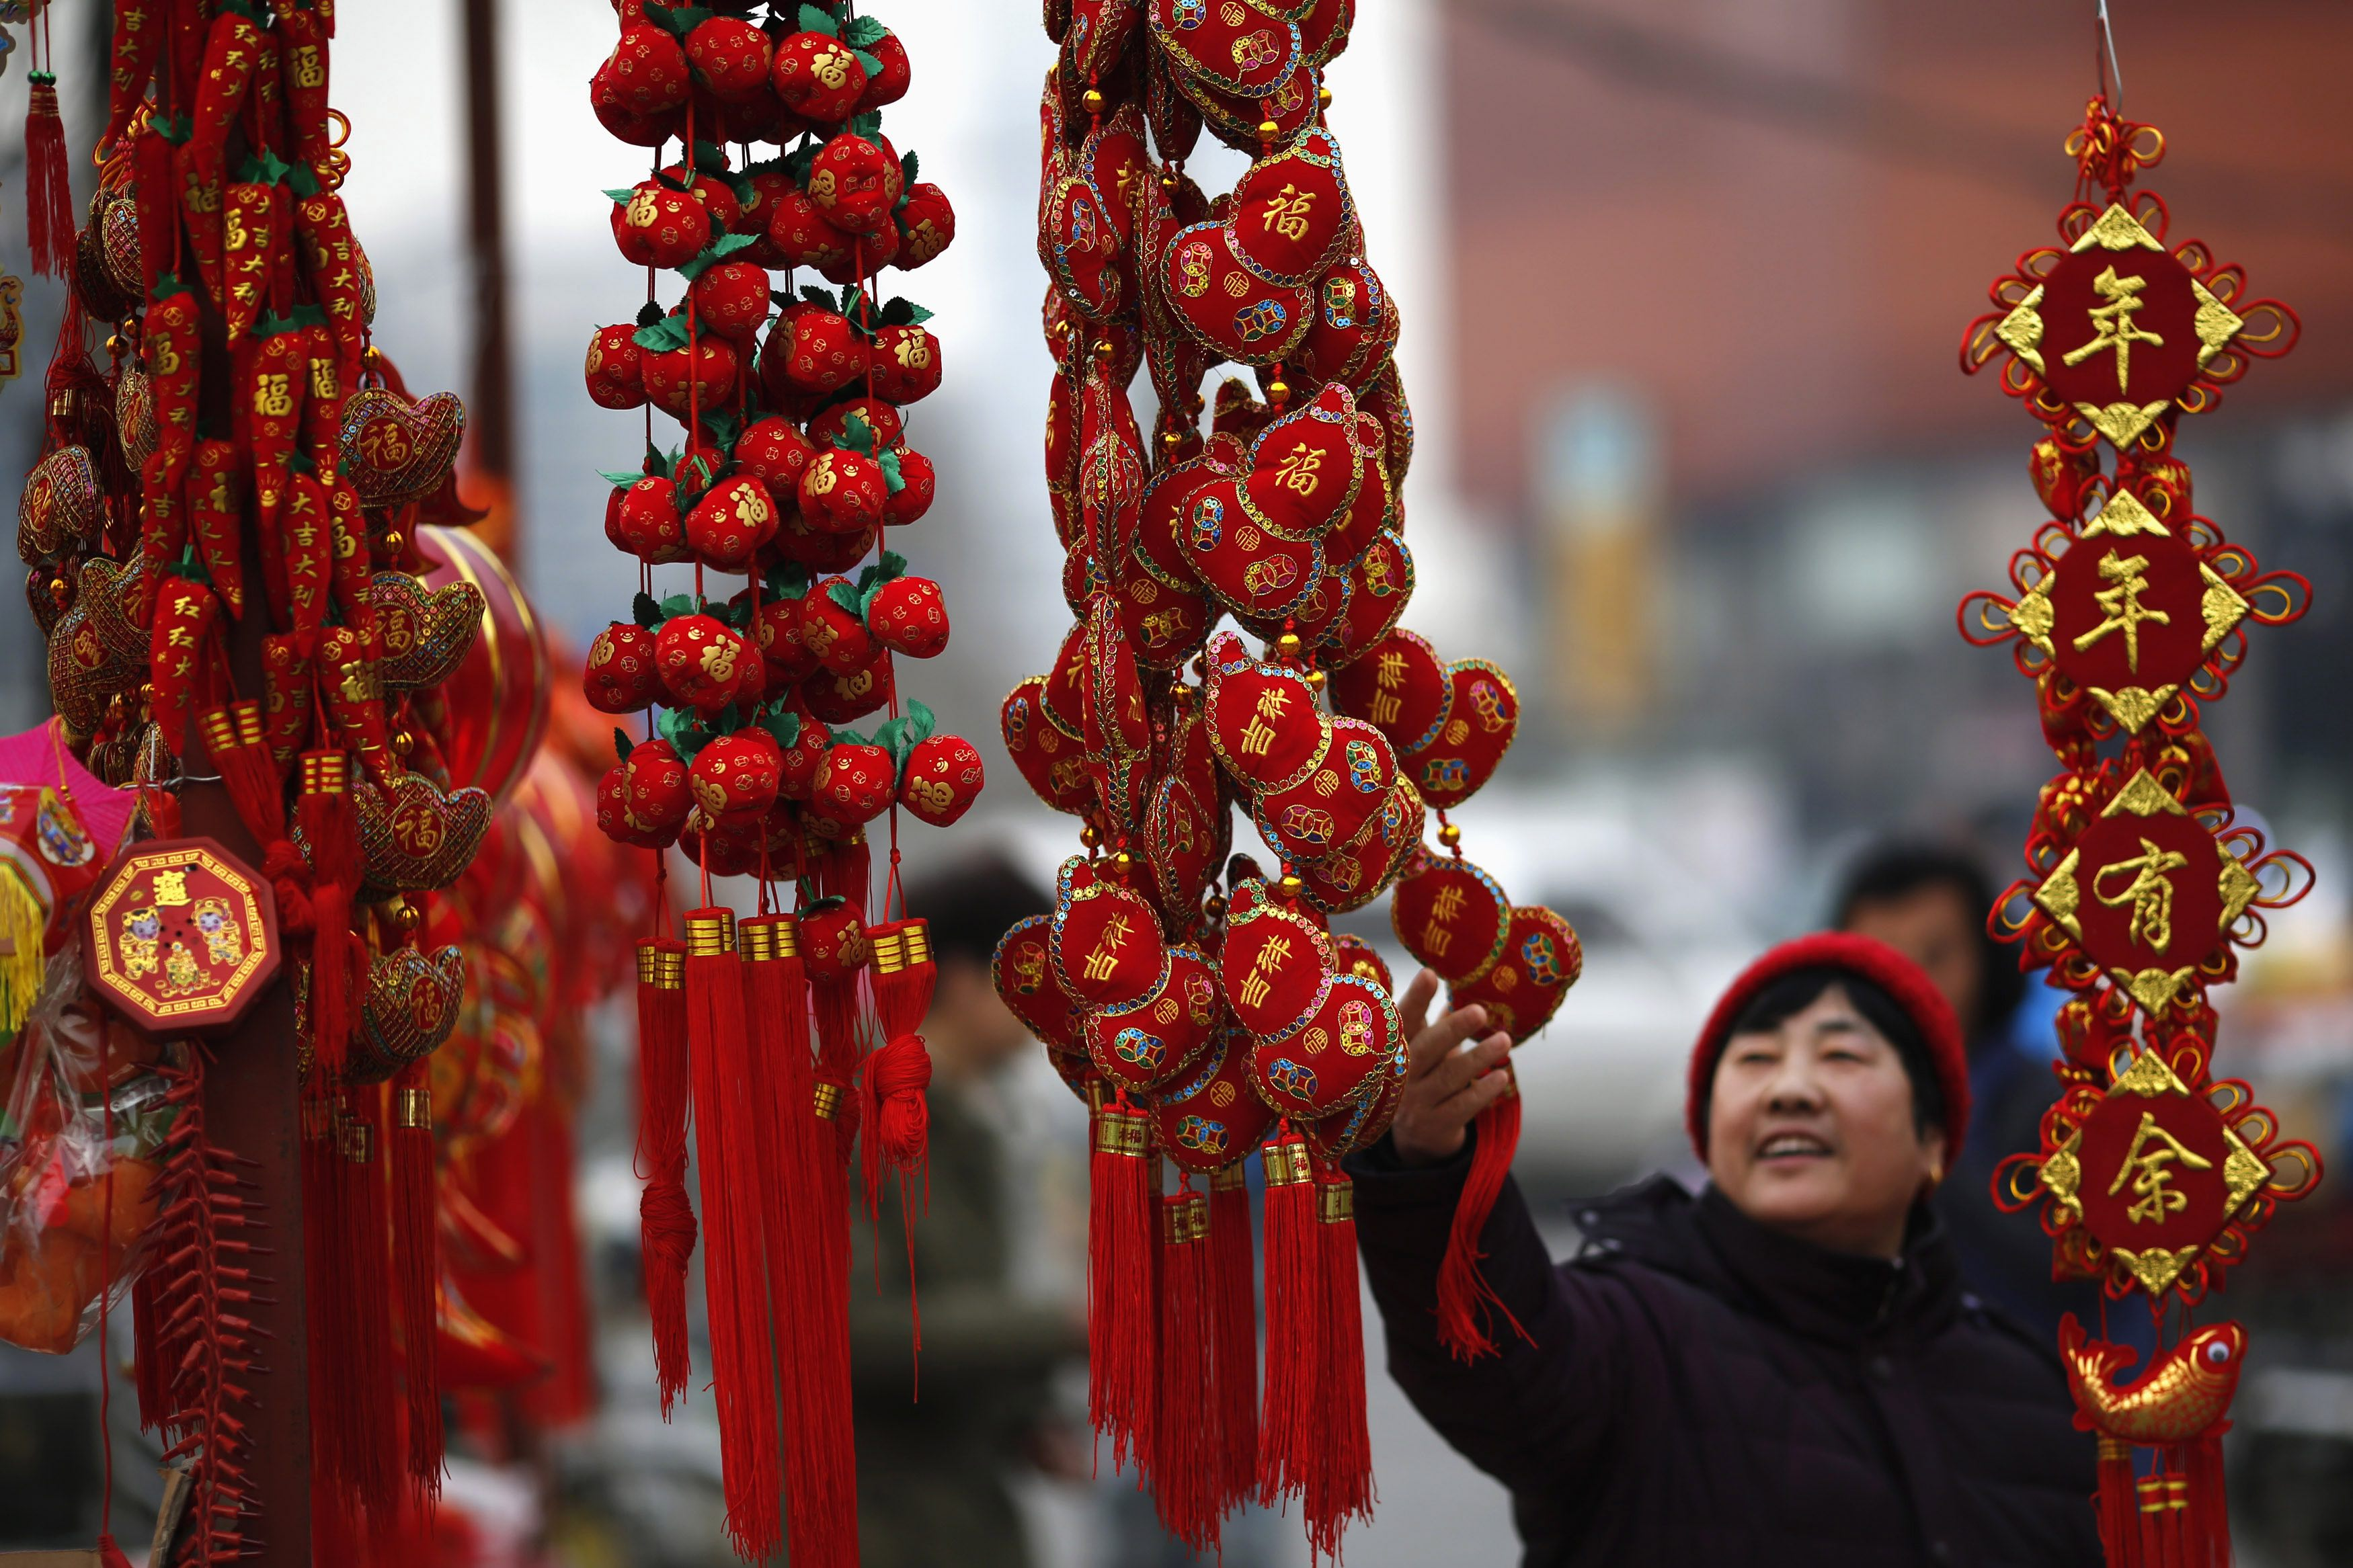 A woman looks at traditional decorations celebrating for the upcoming Chinese Lunar New Year at a market in Beijing February 6, 2015. Credit: Reuters/Kim Kyung-Hoon